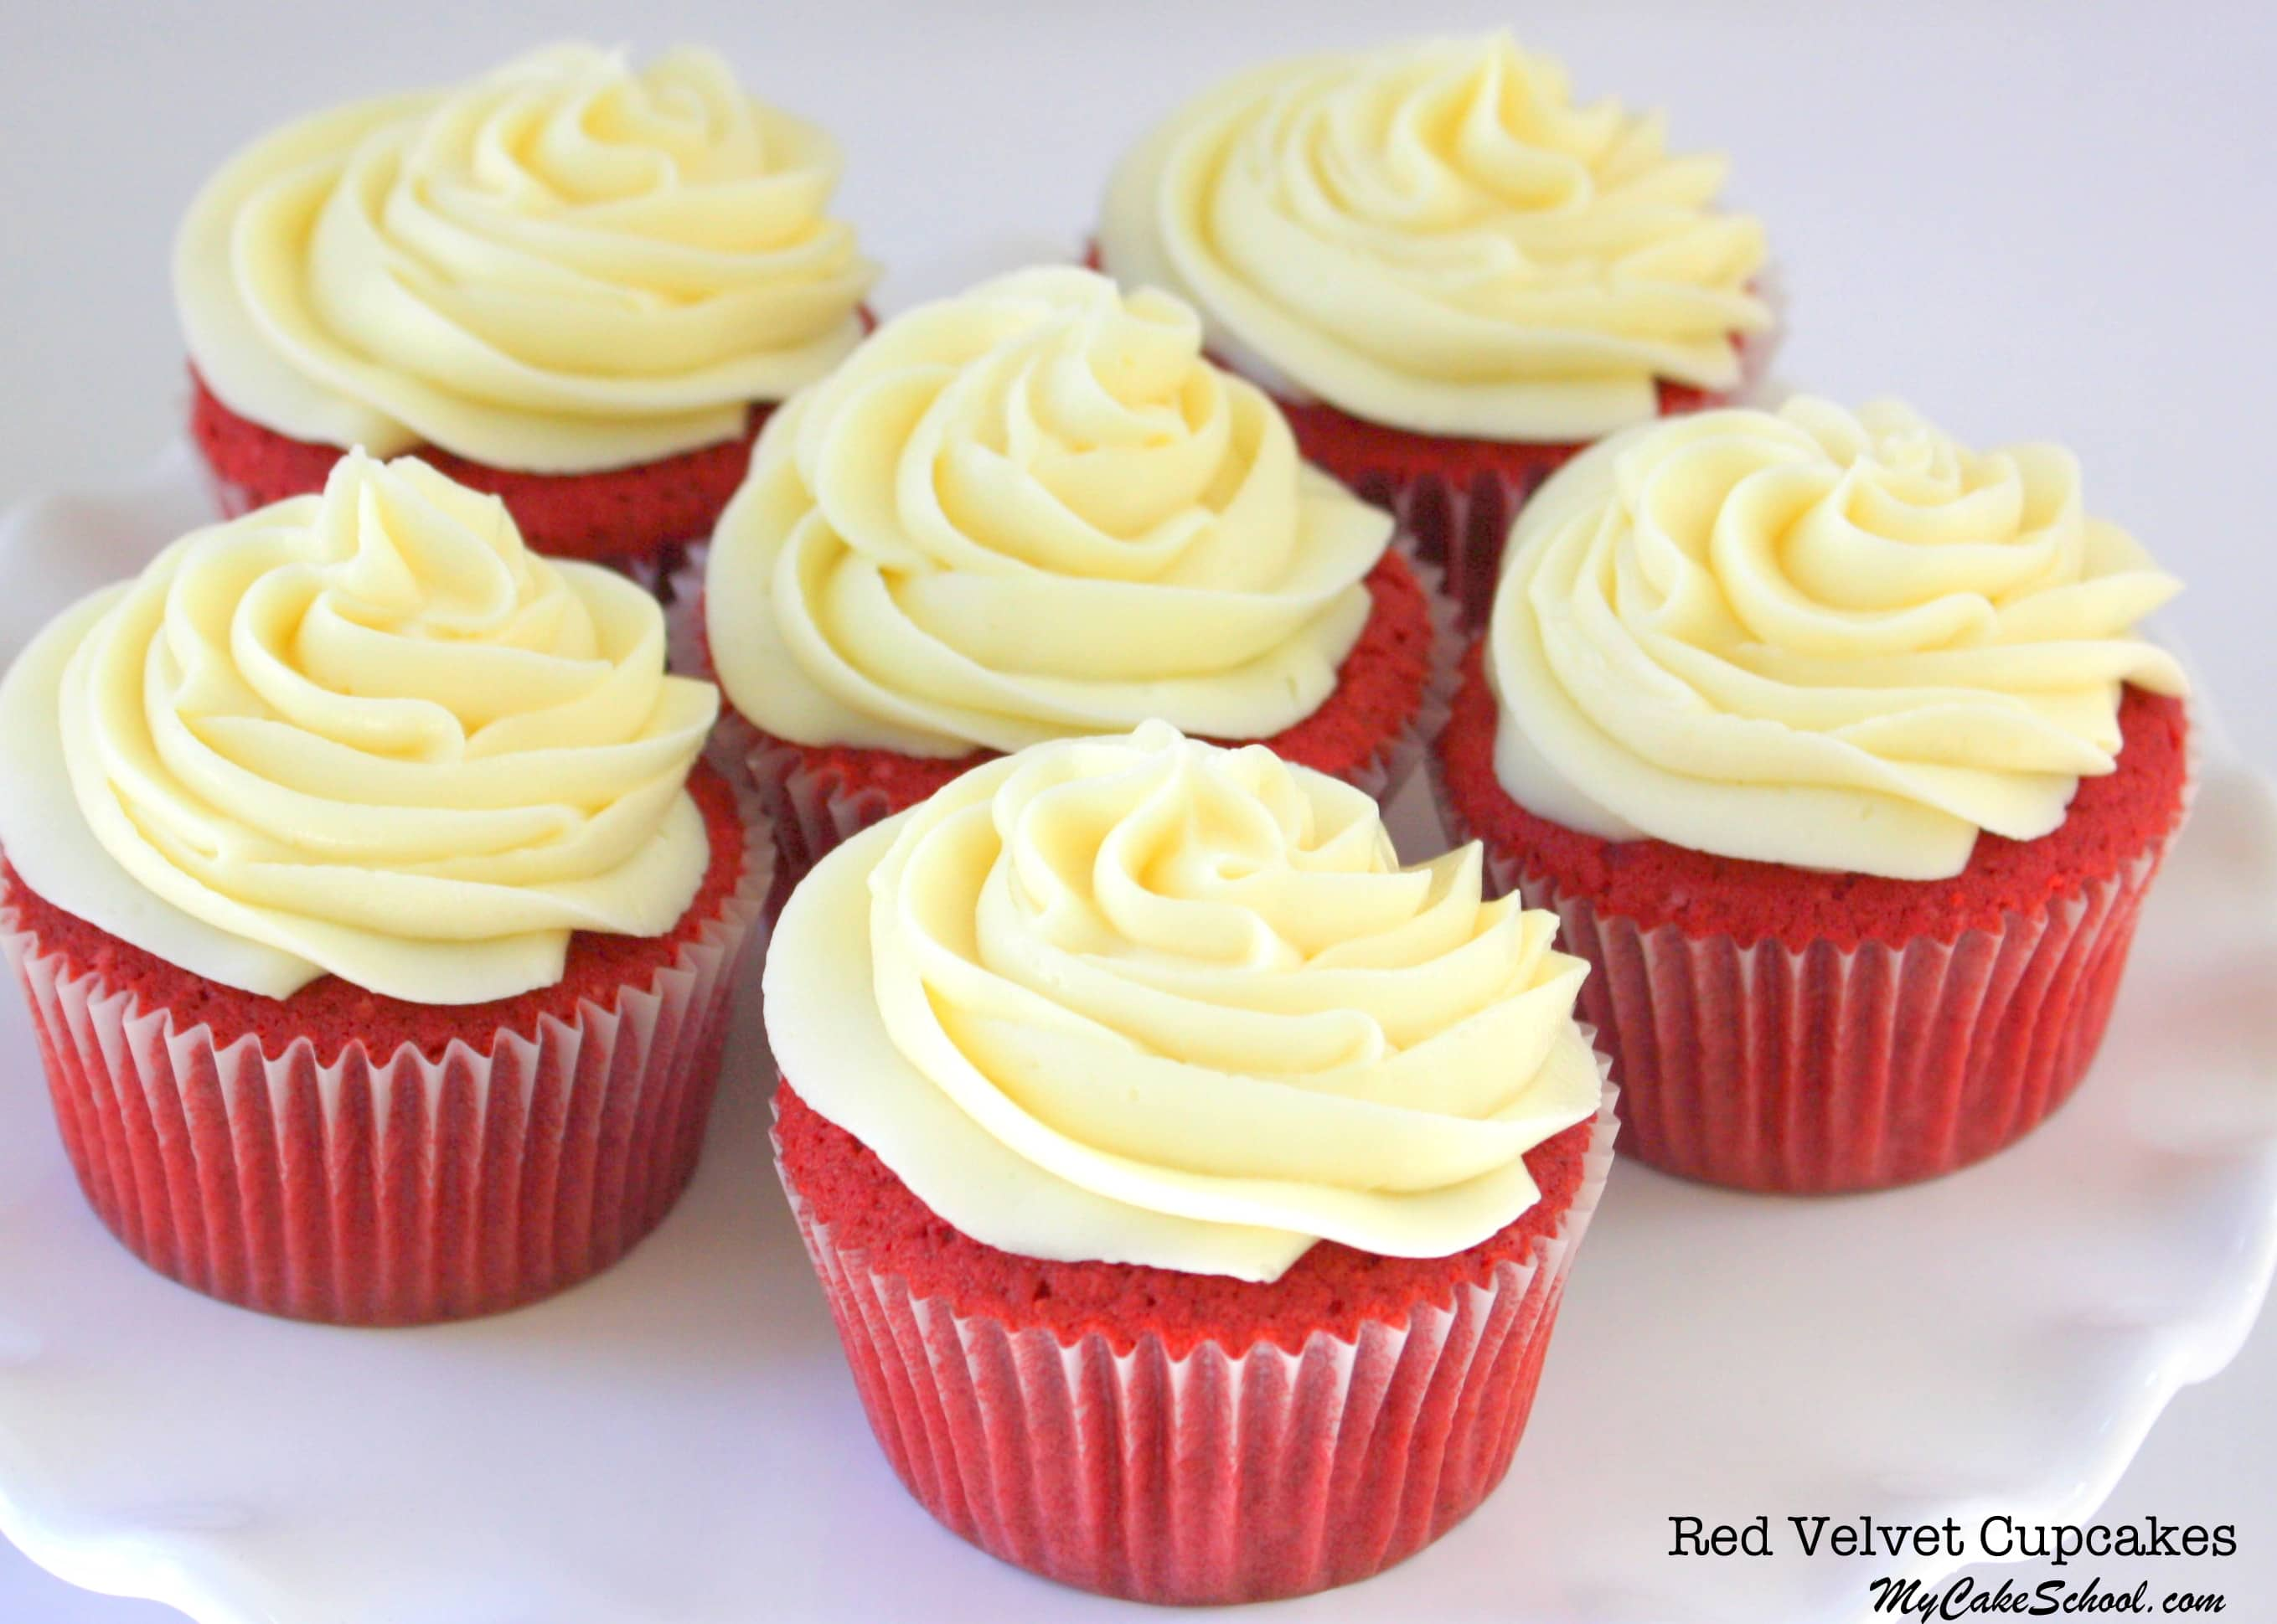 The BEST Red Velvet Cupcakes Recipe by MyCakeSchool.com! Fantastic scratch recipe!